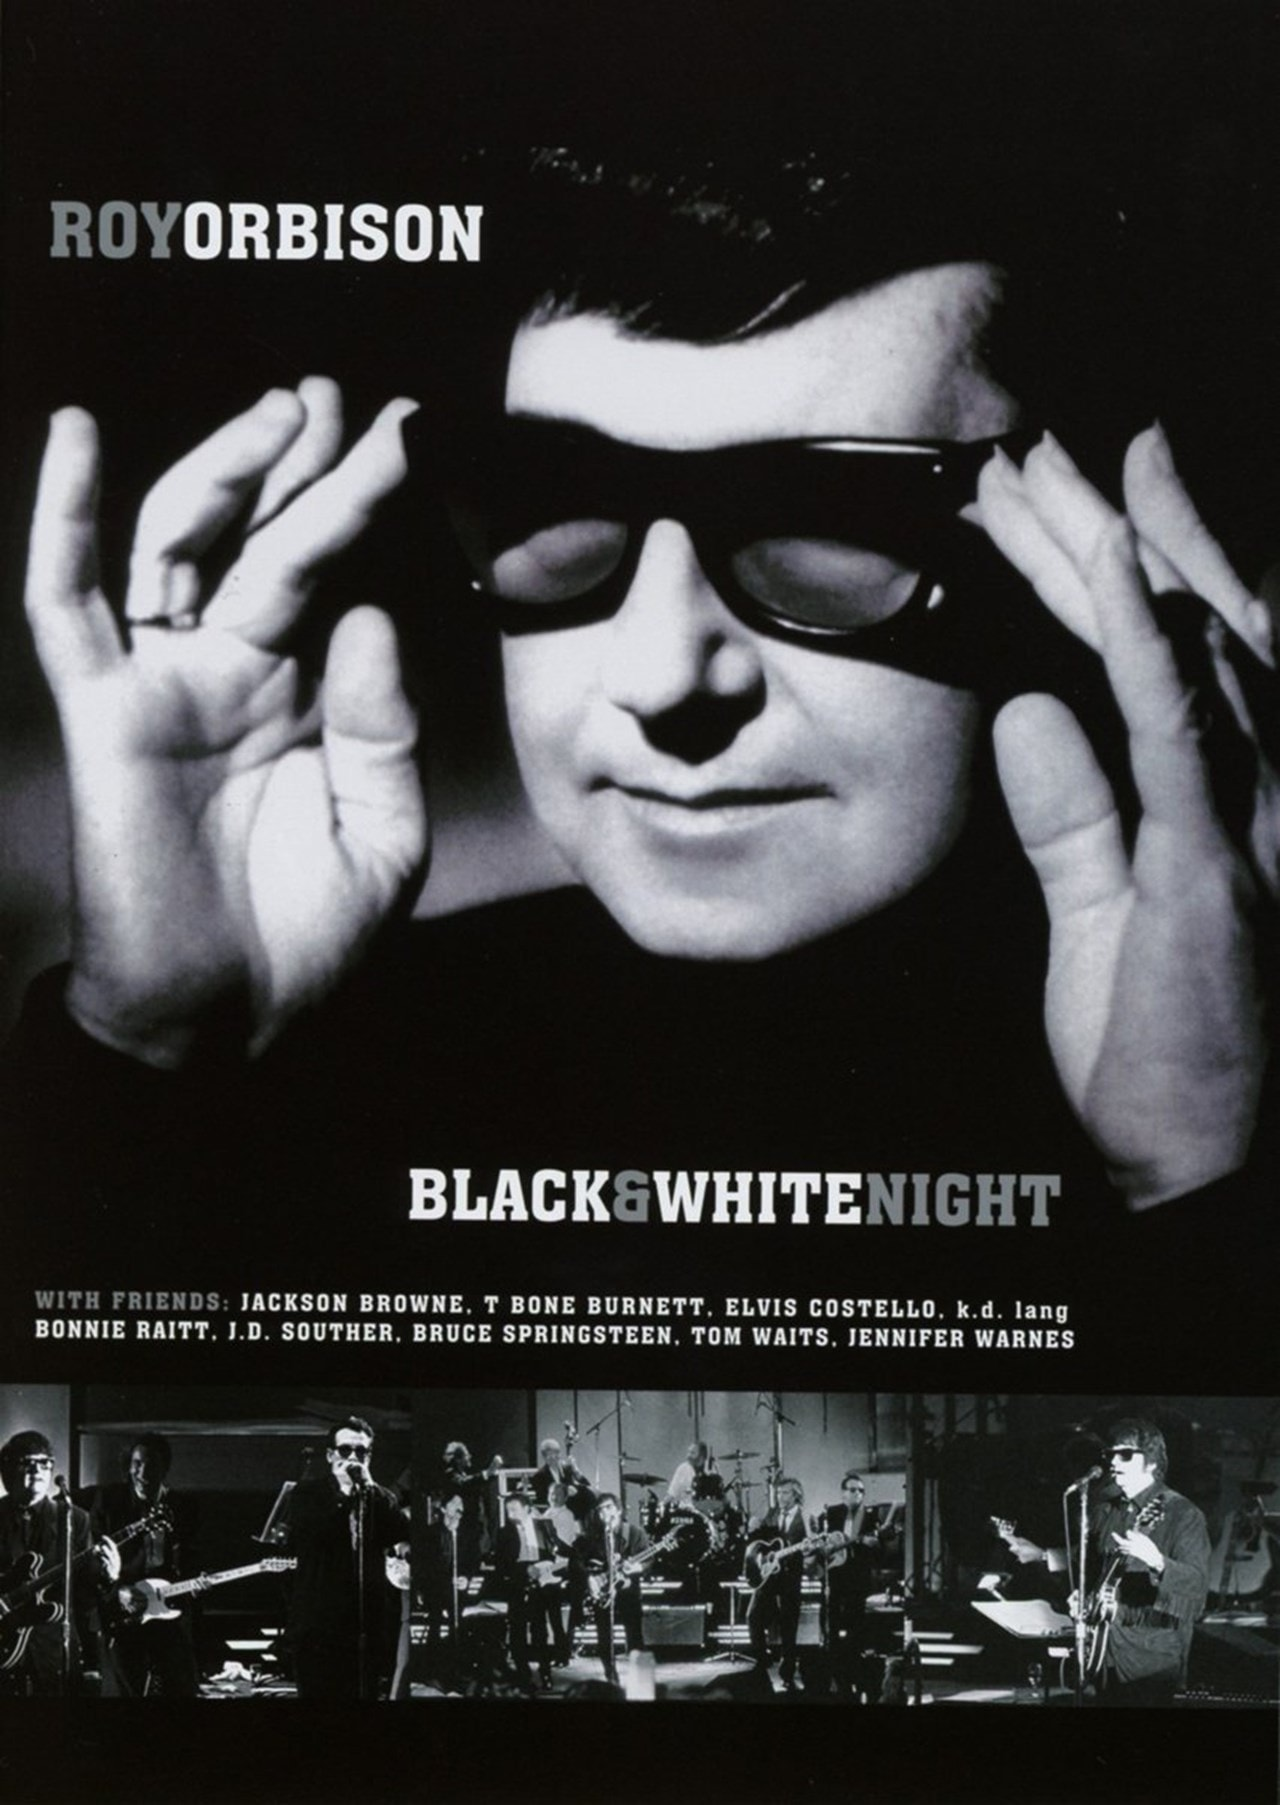 Roy Orbison: Black and White Night - 1